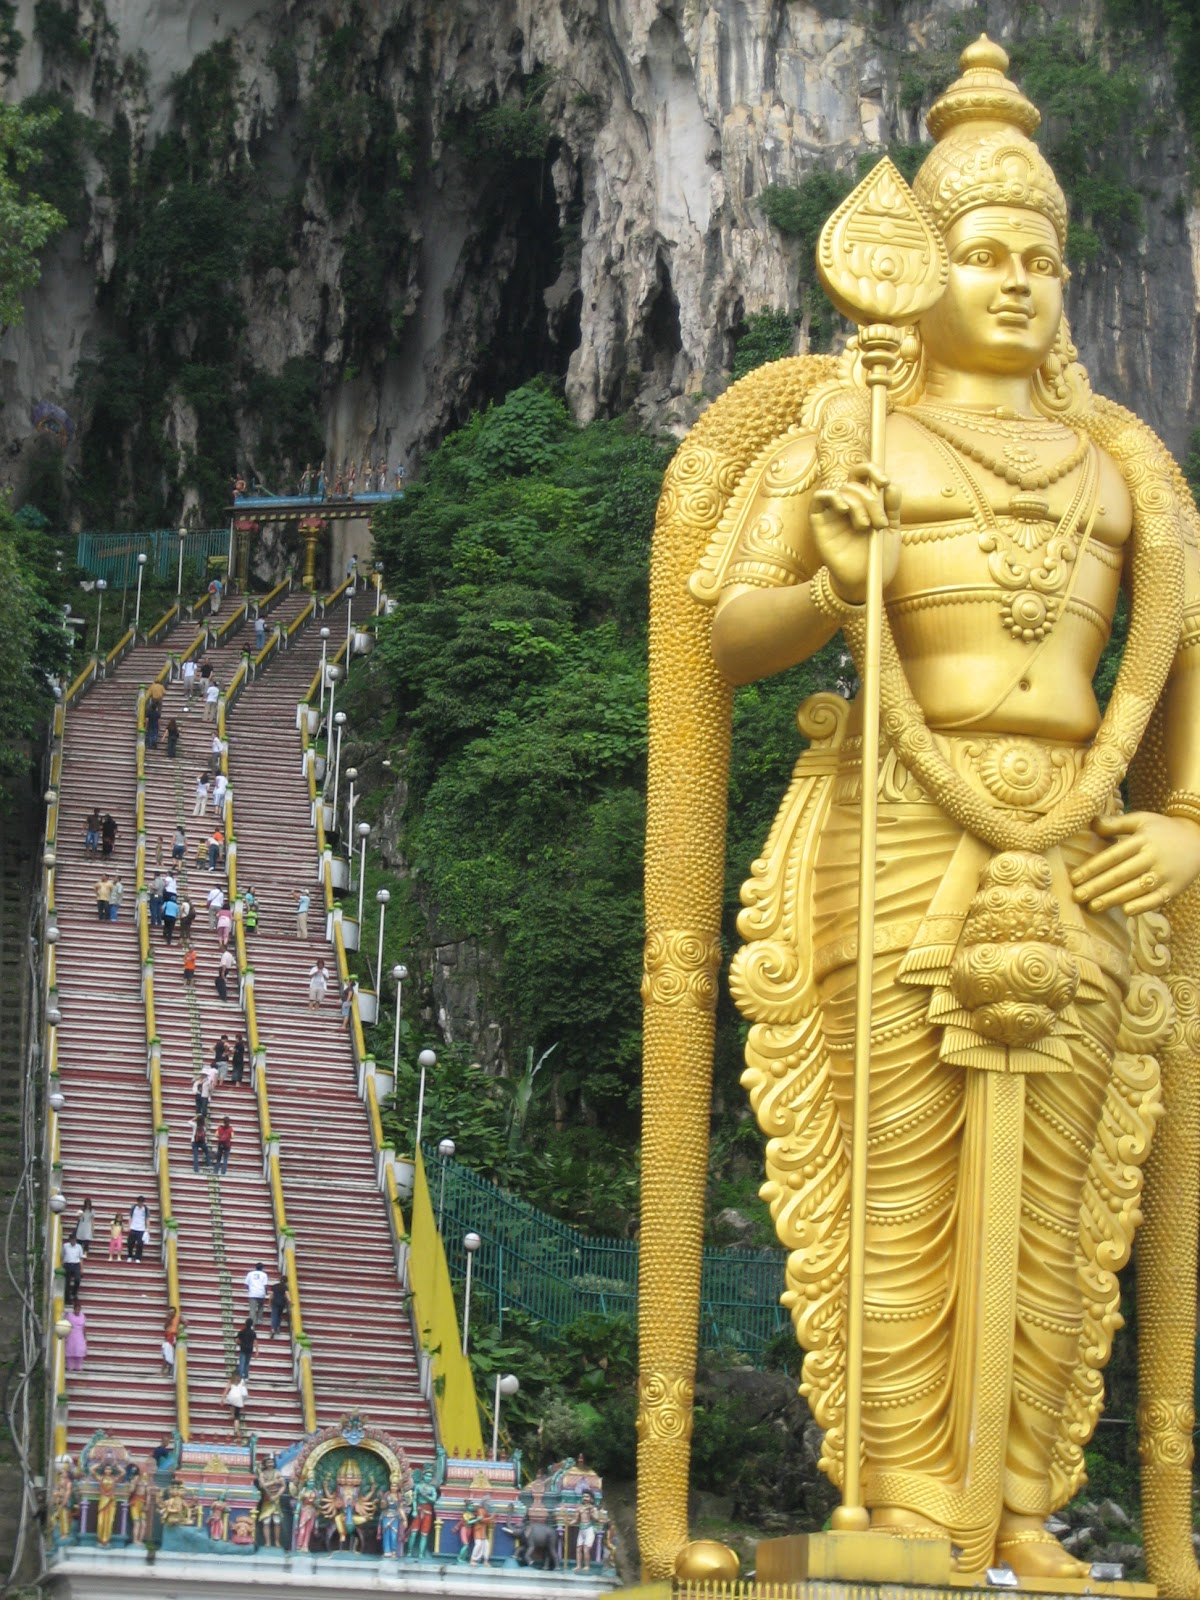 culture and religion in malaysia Malaysian multicultural society is typified by three major ethnic groups, namely malays, chinese and indians in the malaysian context, ethnicity is important in the identification of one's.